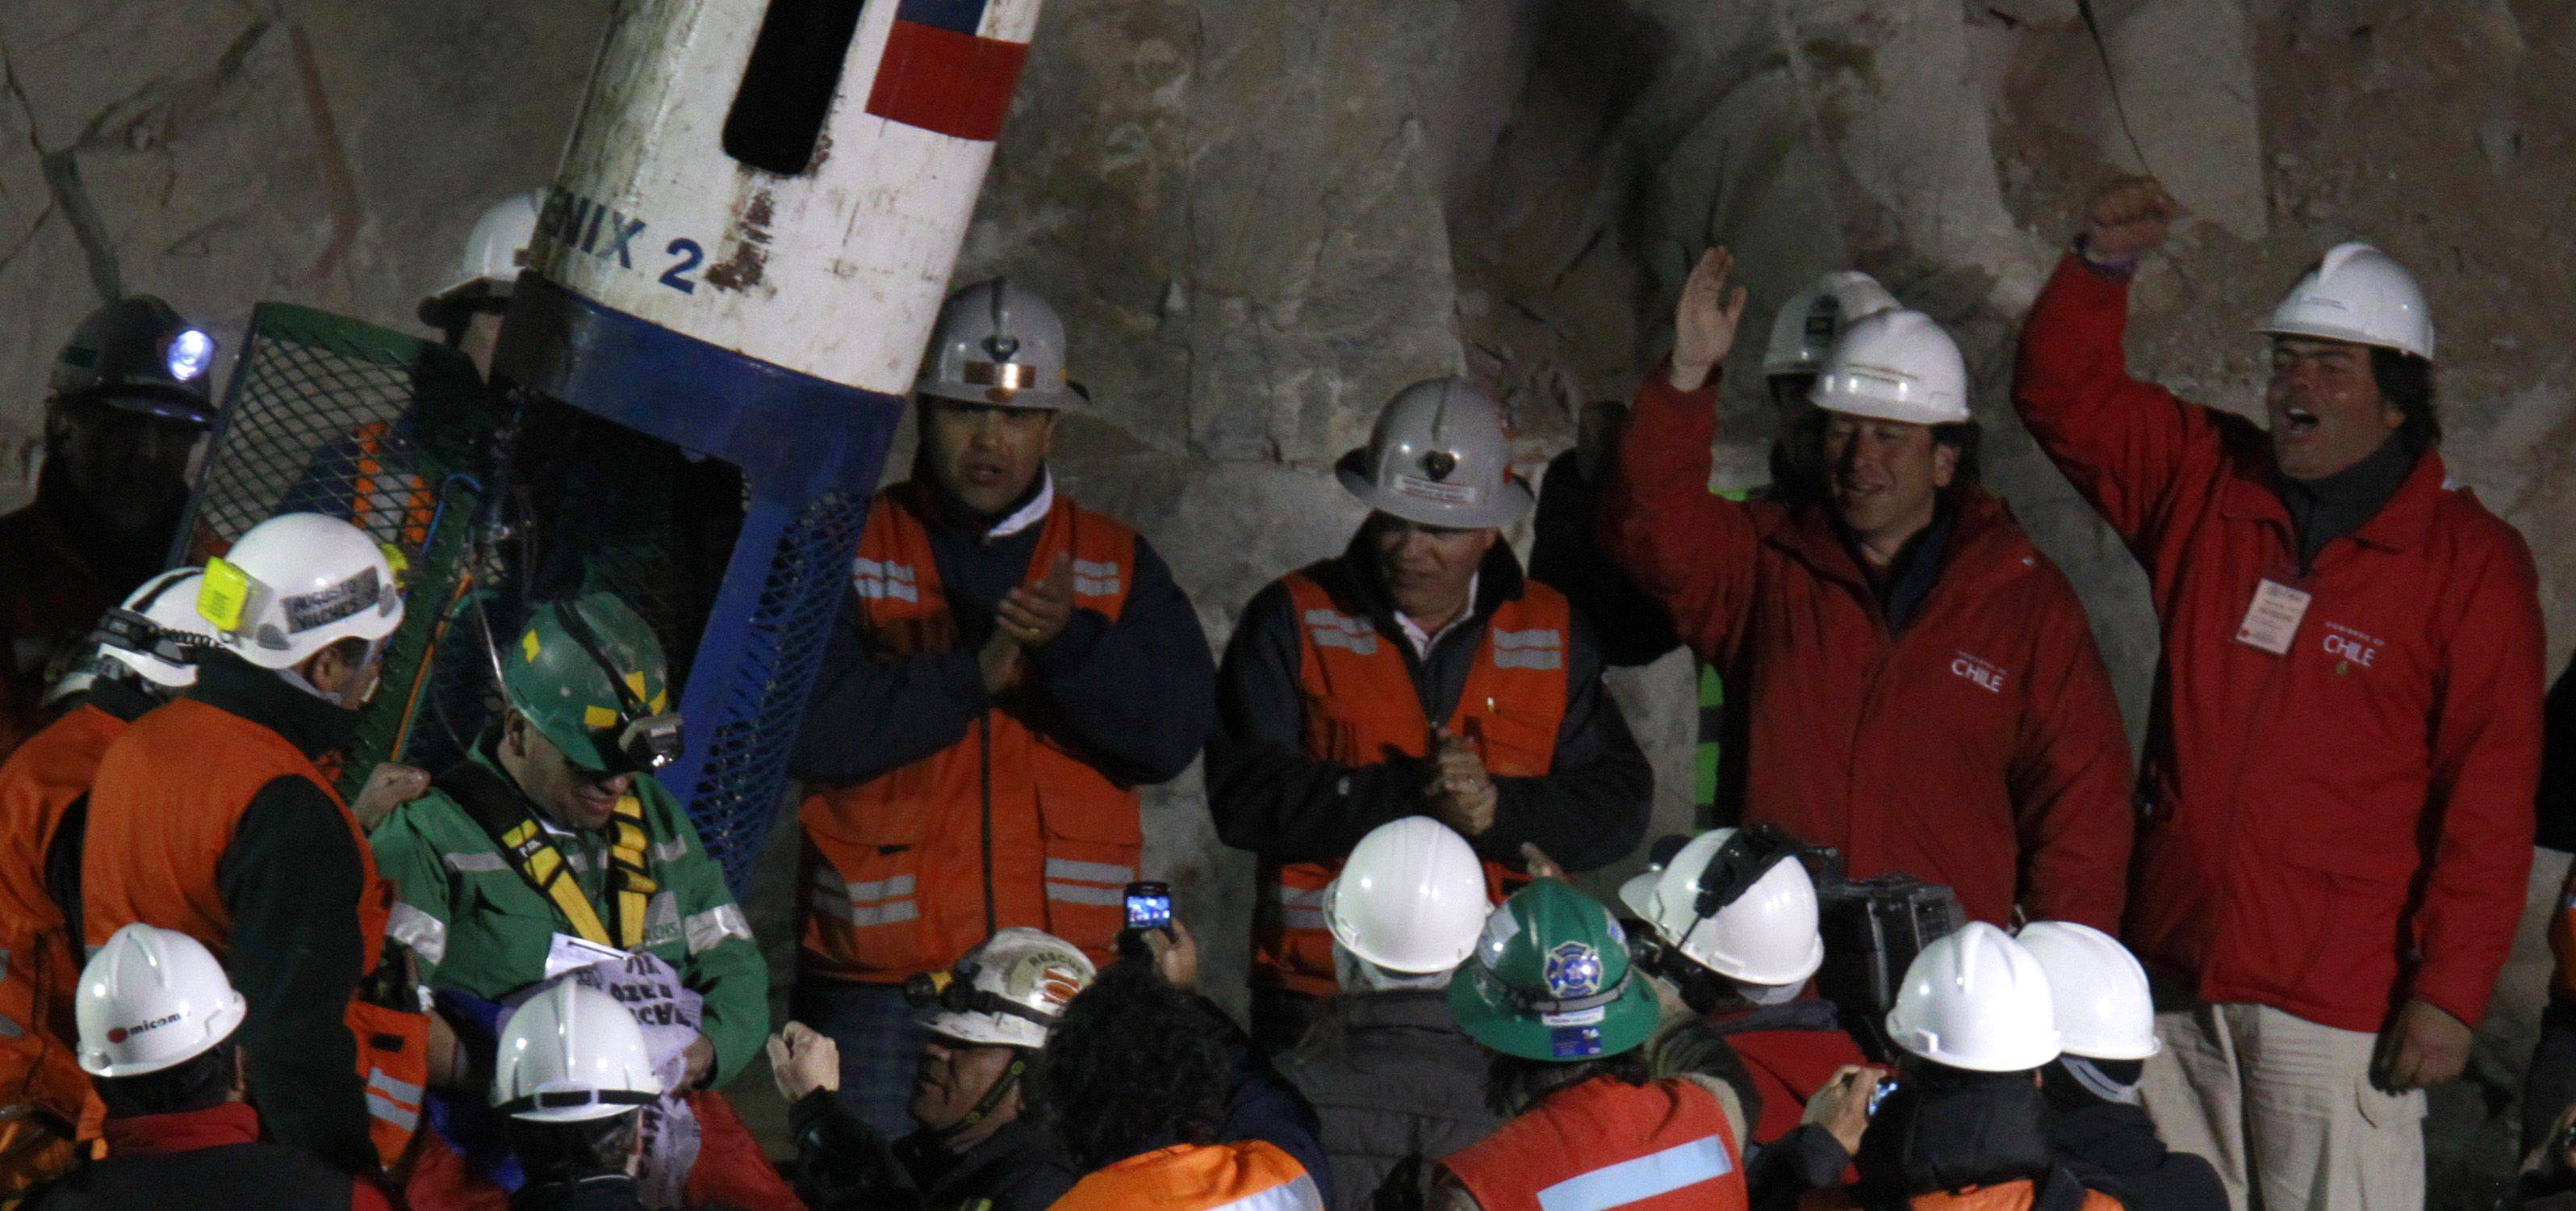 Images from the miner rescue